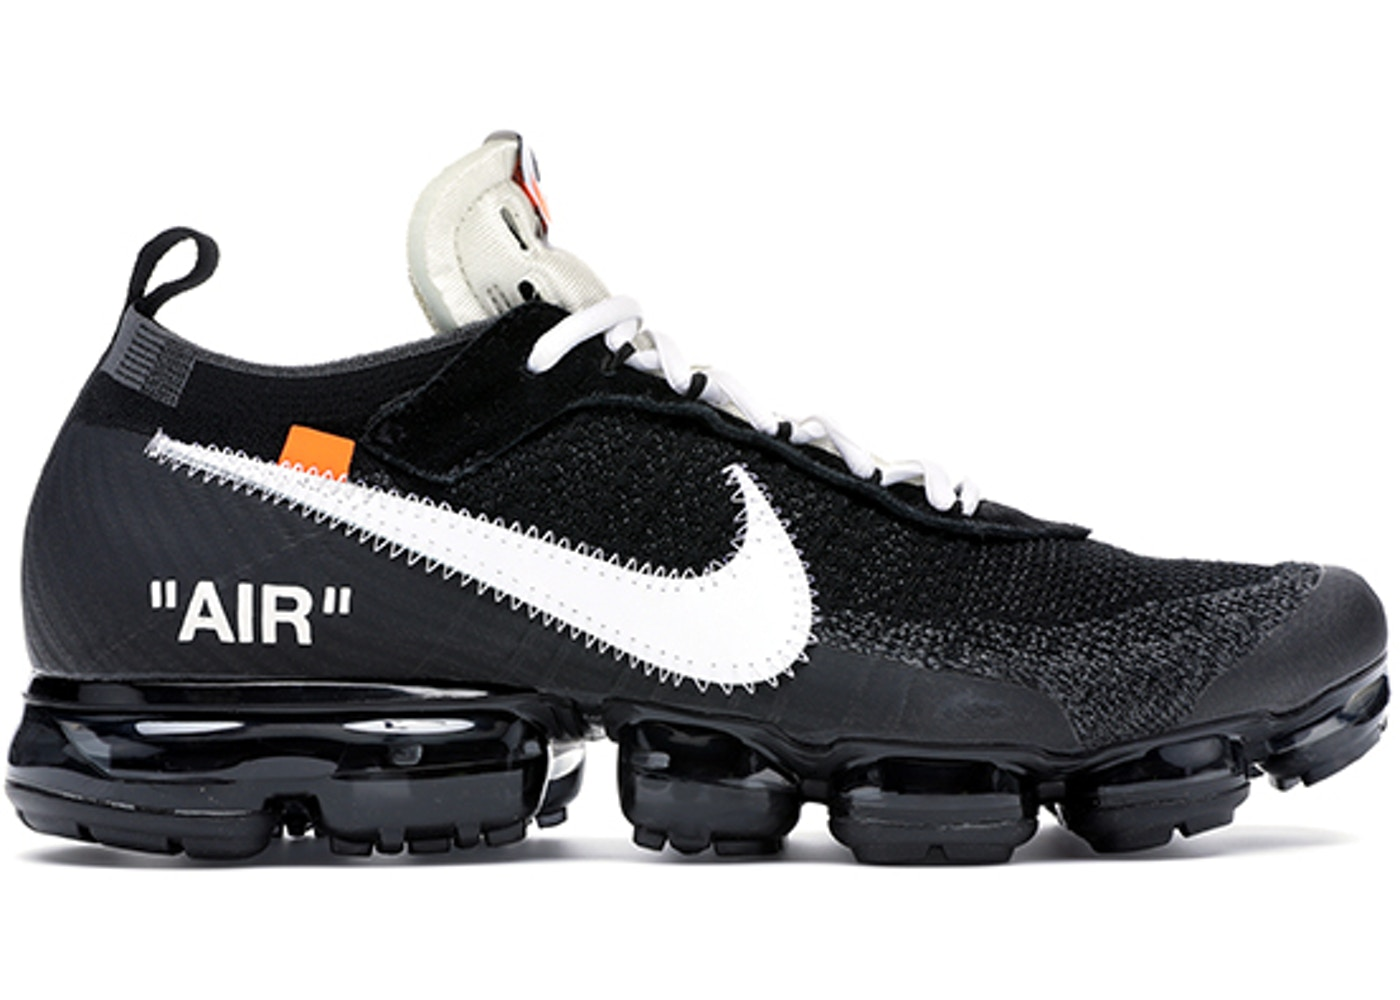 0f0e56feb Air VaporMax Off-White - AA3831-001